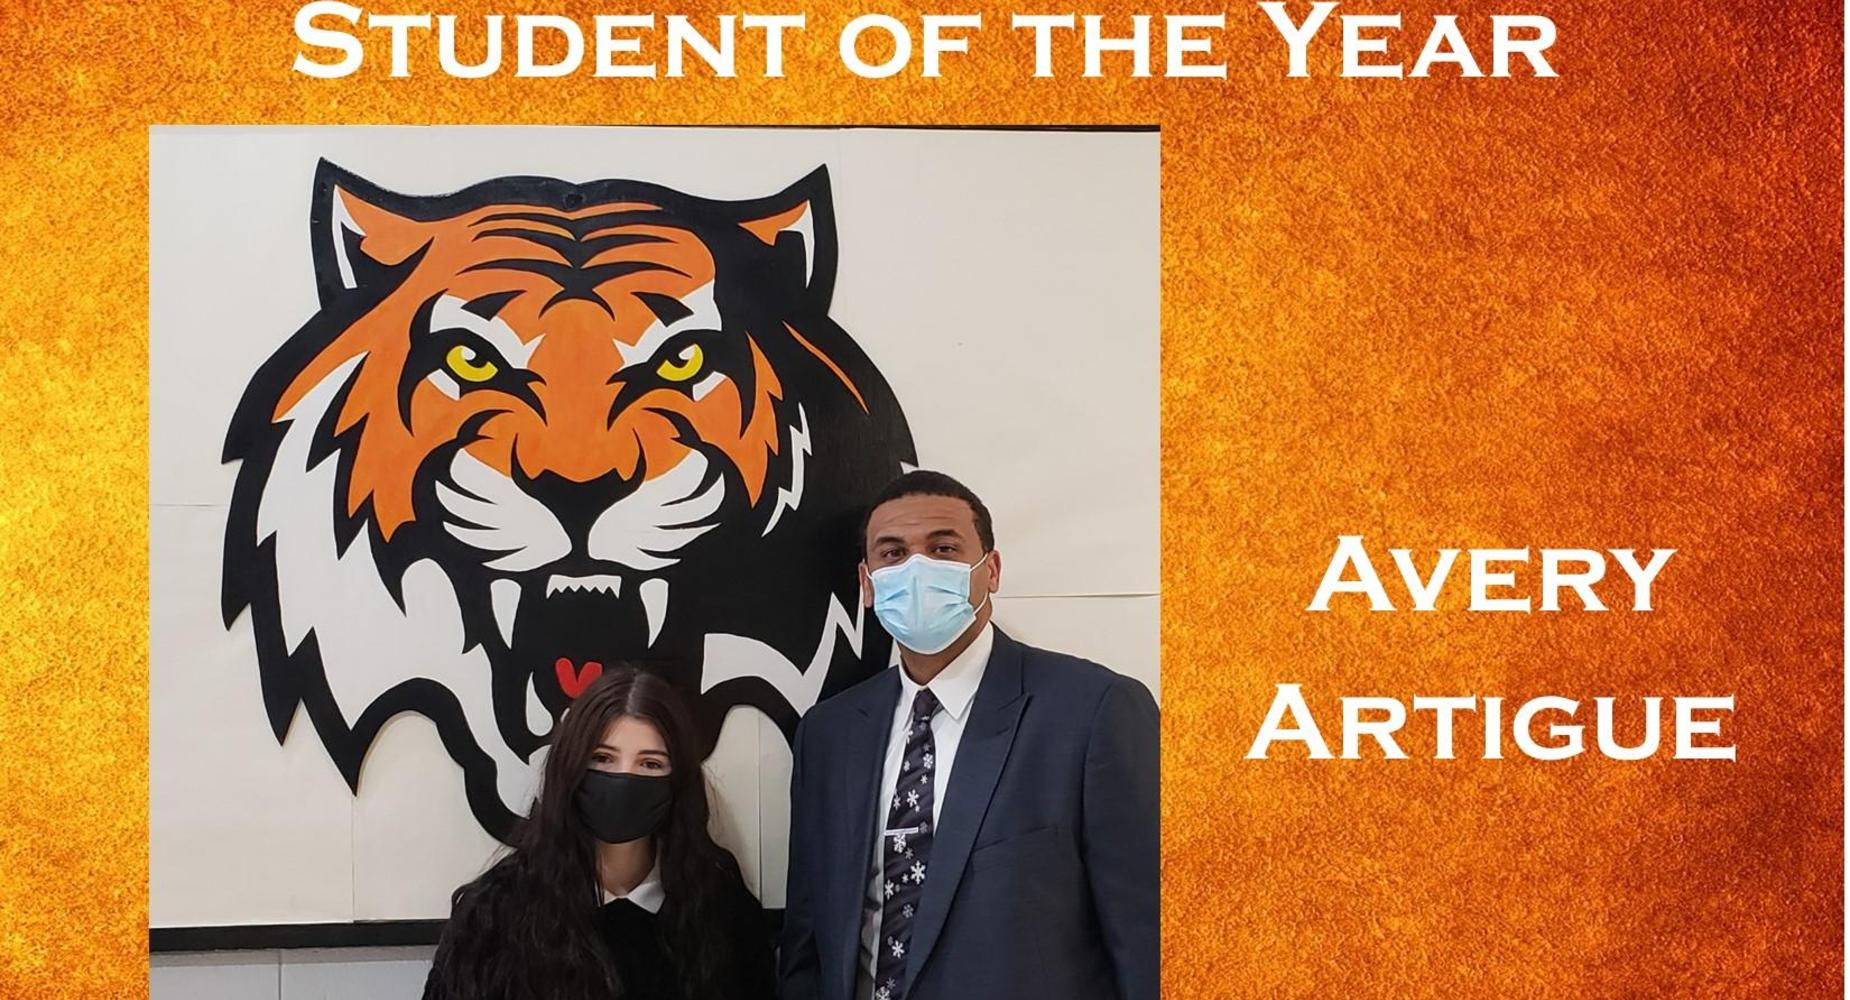 Student of the Year Avery Artigue